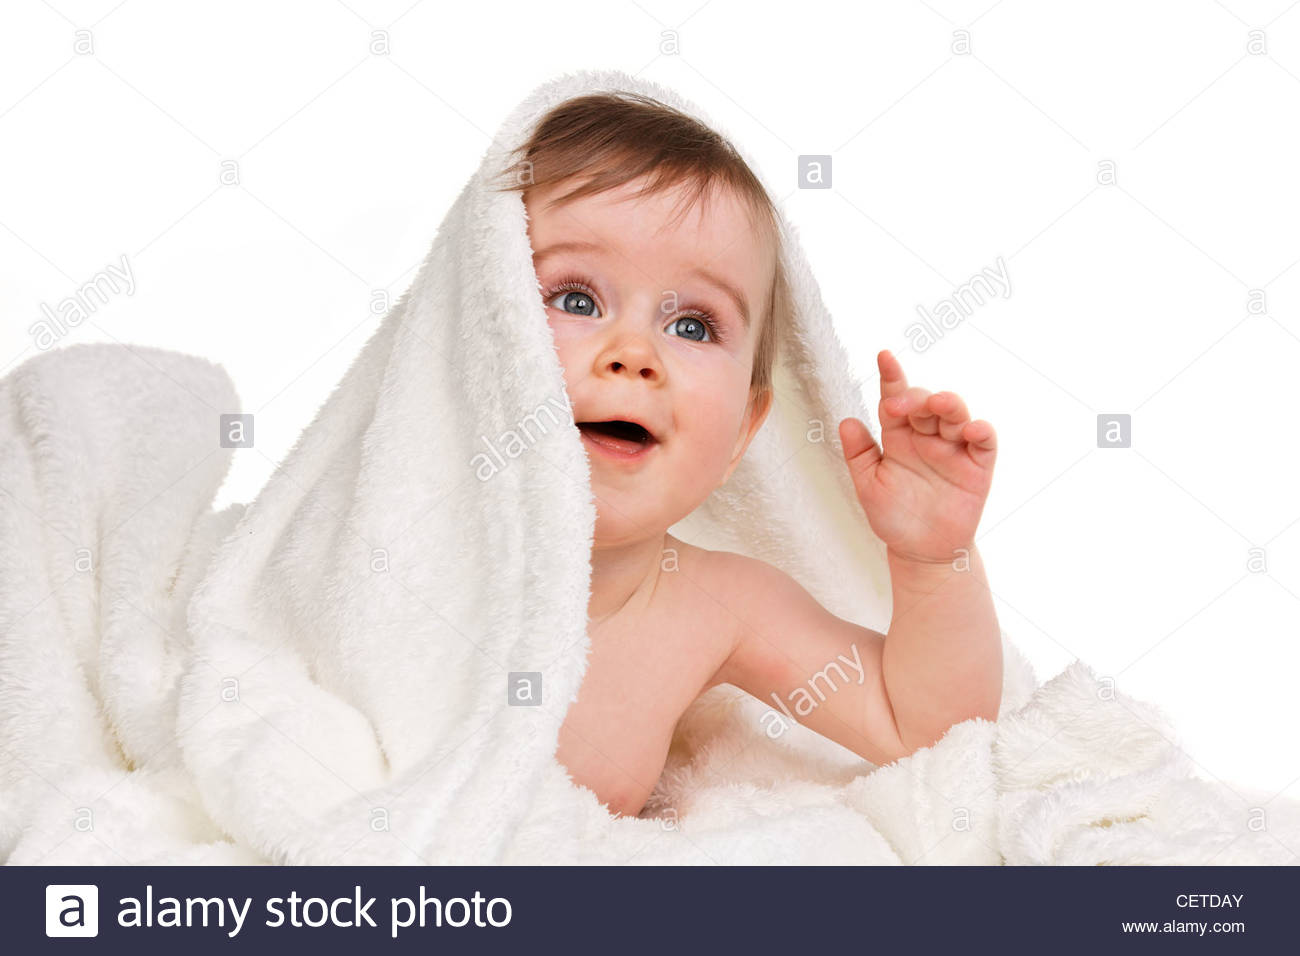 Small Astonished Child Baby Wrapped In Blanket Stock Photo 43563267